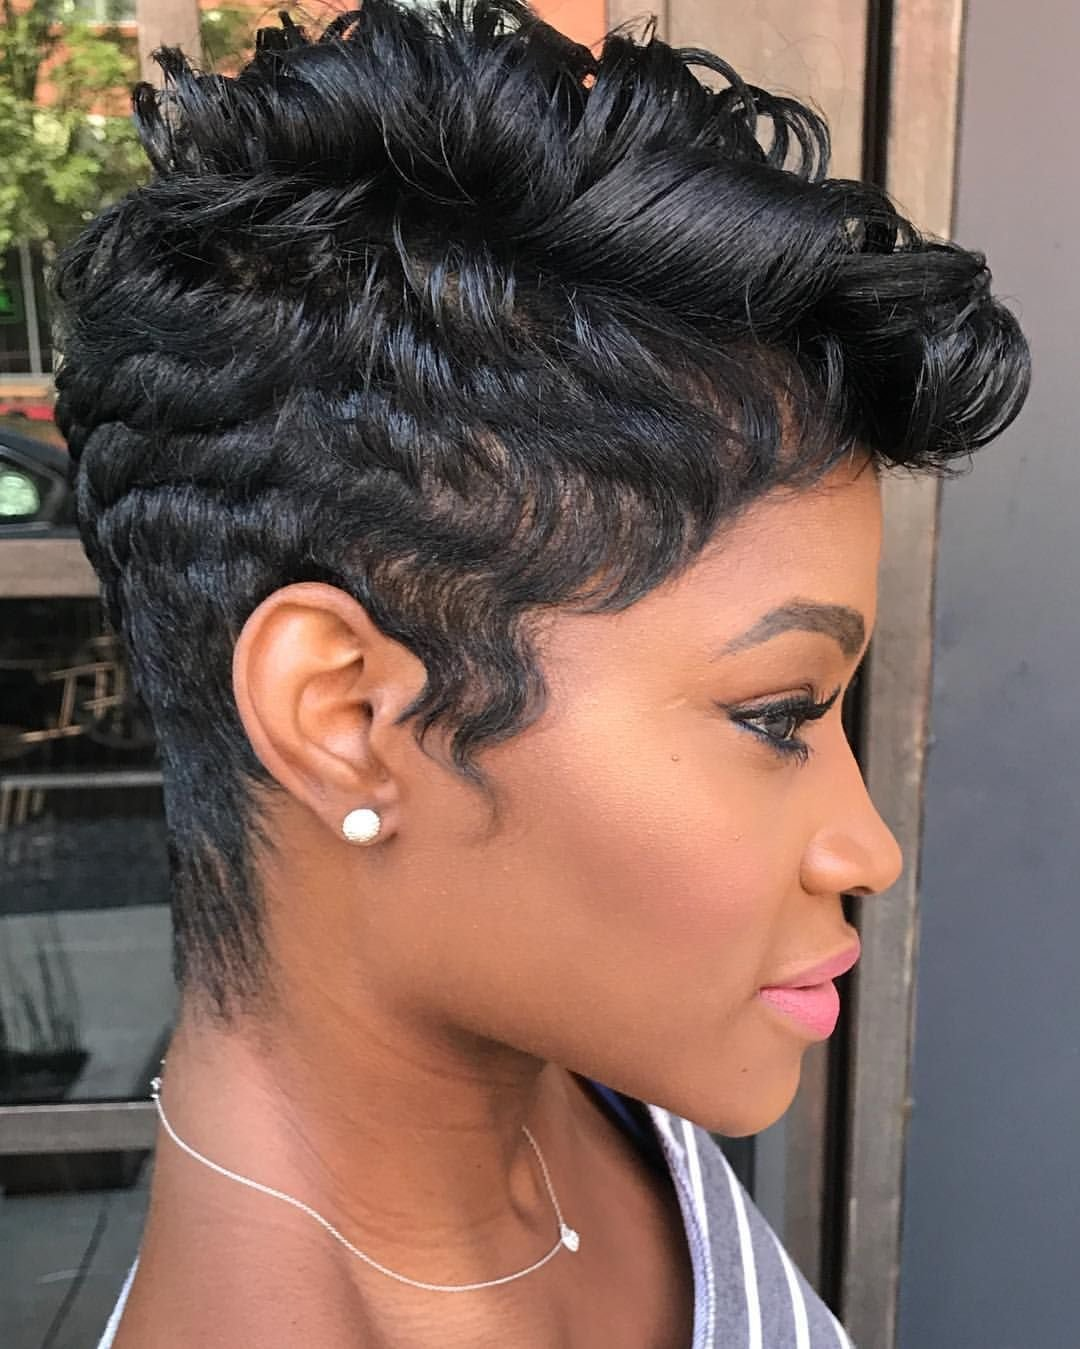 The Best Short Hair Business All Summer 17 ️ ️ ️ Hotlanta Pictures